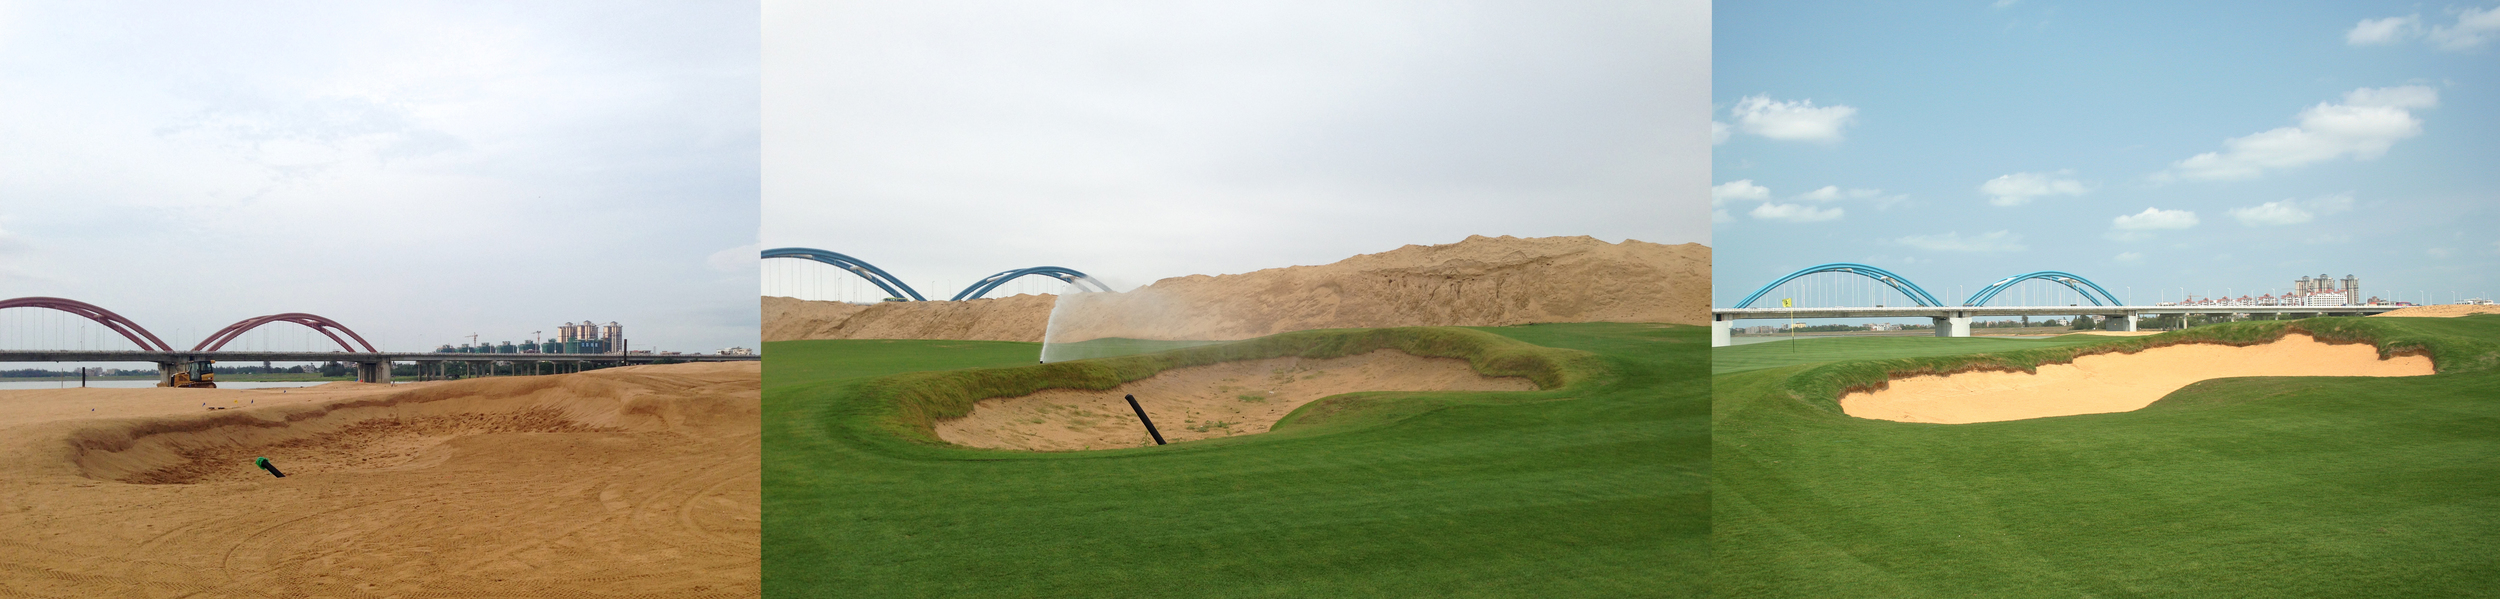 The bunker finish process: rake and shovel finish, grass grow-in, and final edge cutting.